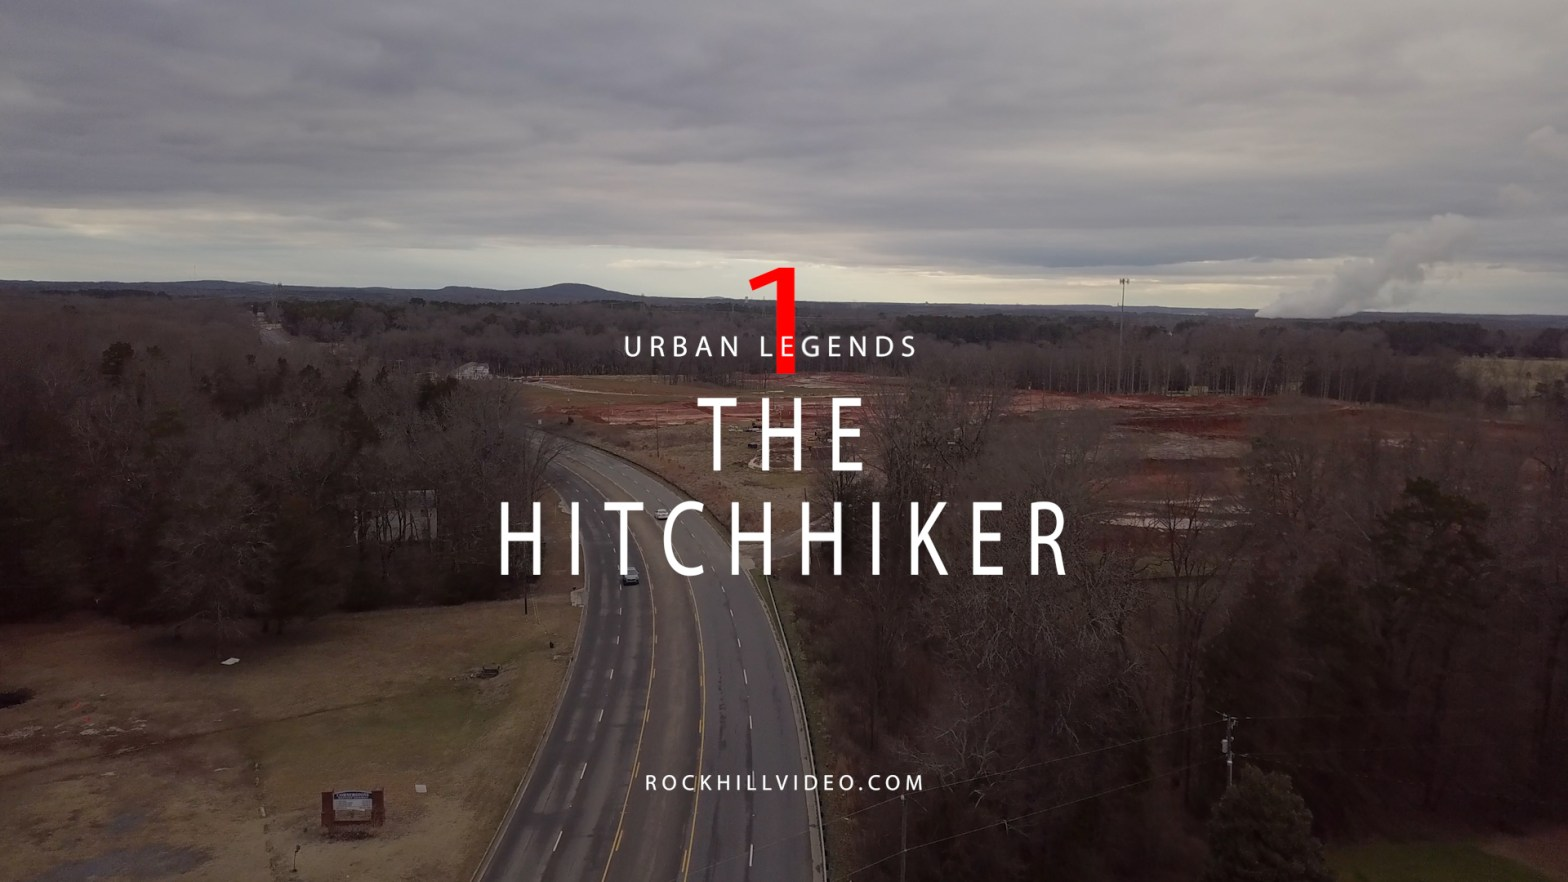 rock hill video urban legends series ep.1 the hitchhiker